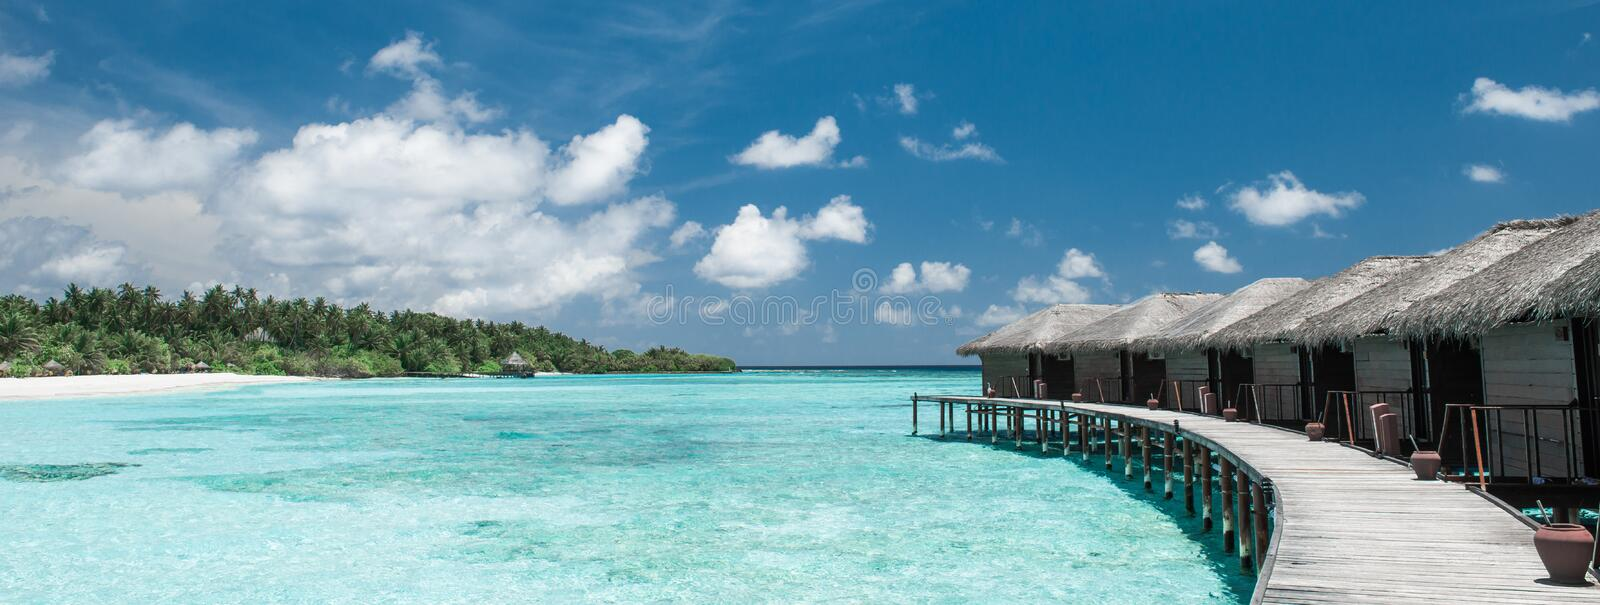 Water Bungalows on the Maldives royalty free stock images